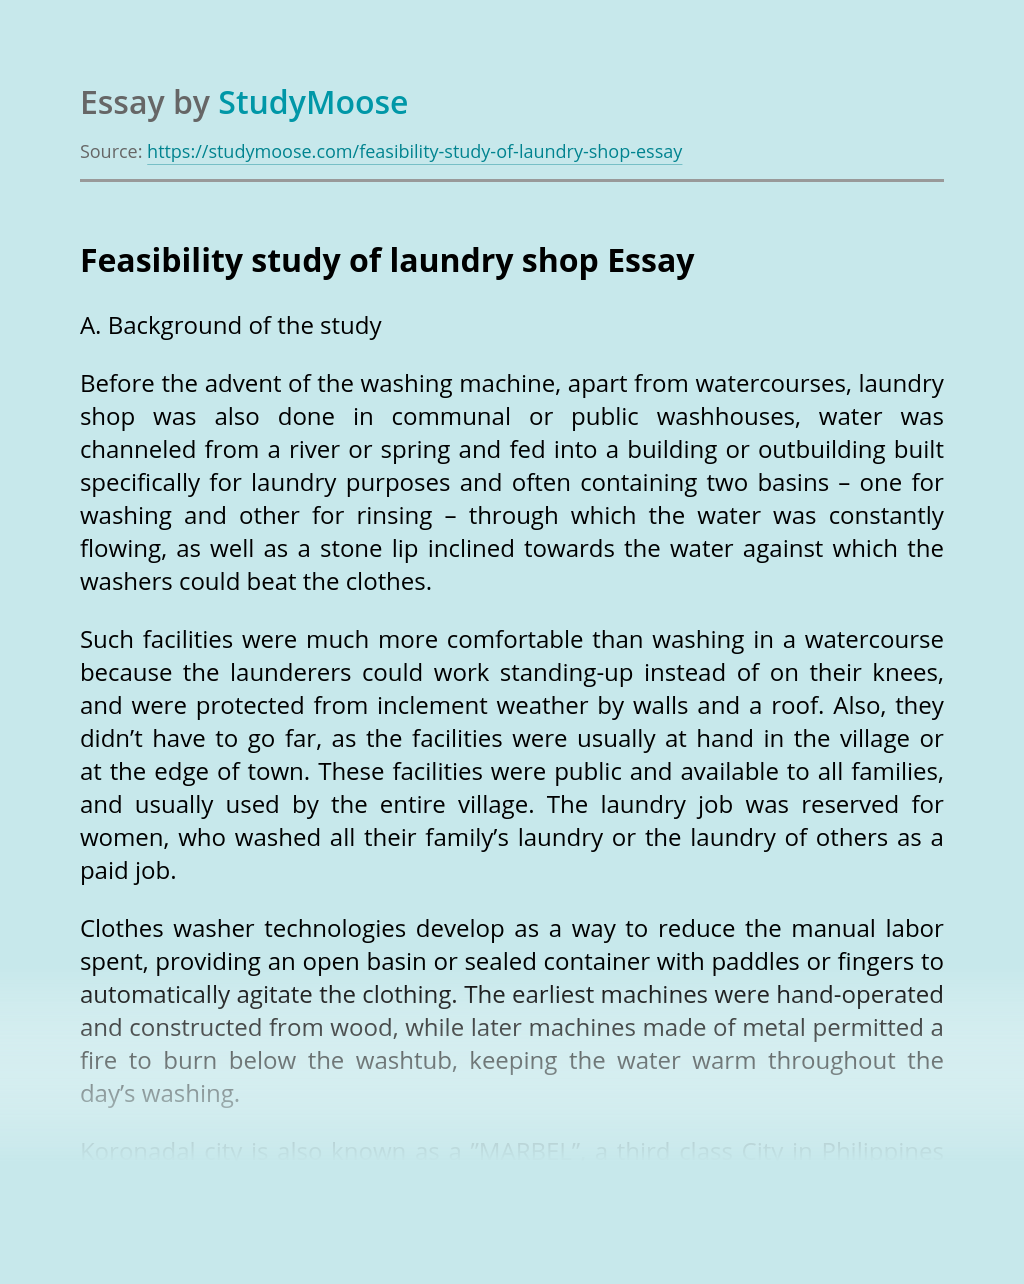 Feasibility Study of Laundry Shop